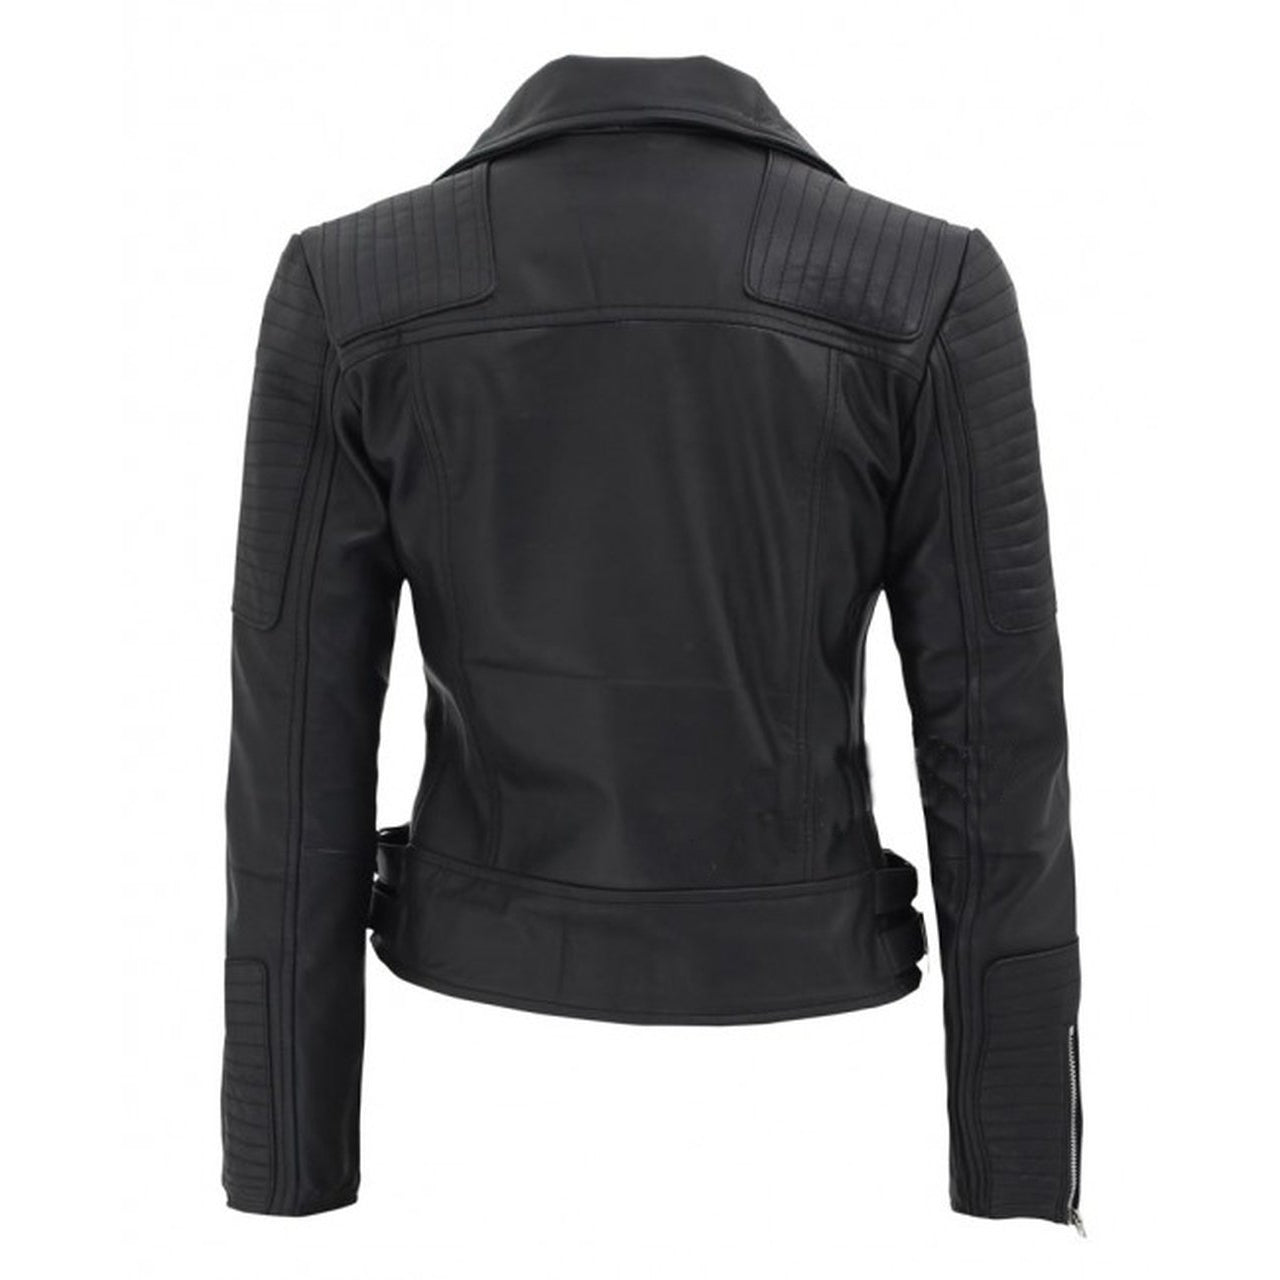 Black Leather Moto Jacket For Women - Leather Jacket